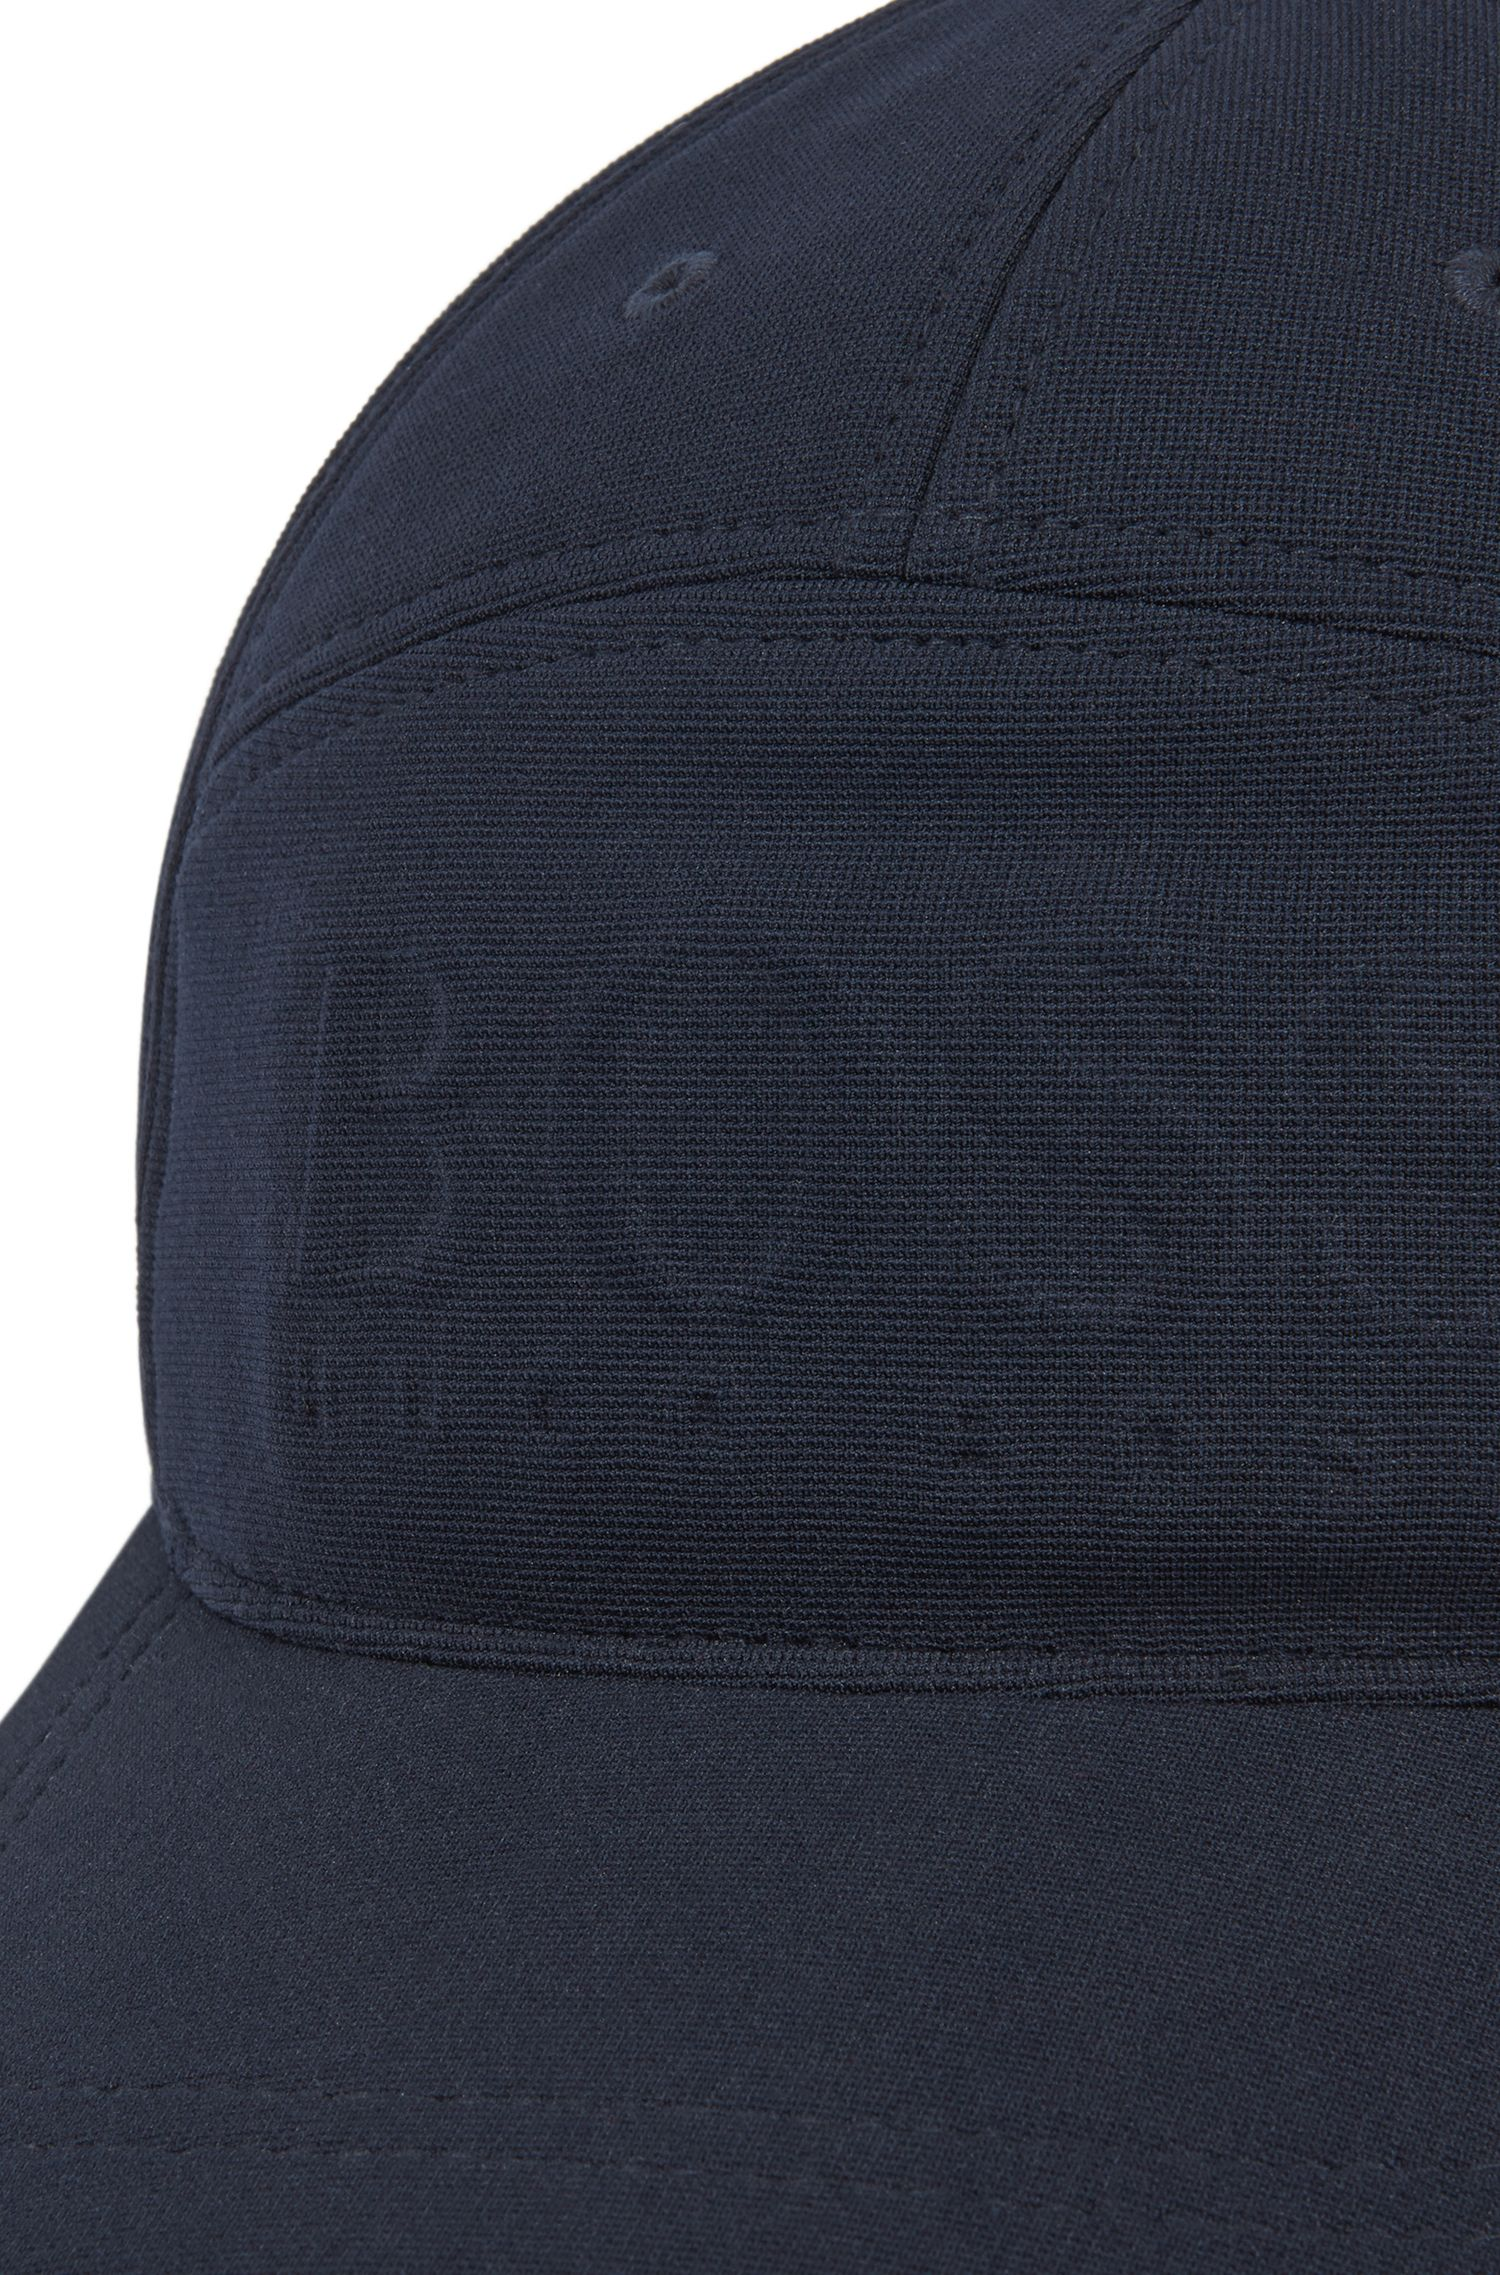 Breathable ottoman fabric cap with embossed logo, Dark Blue